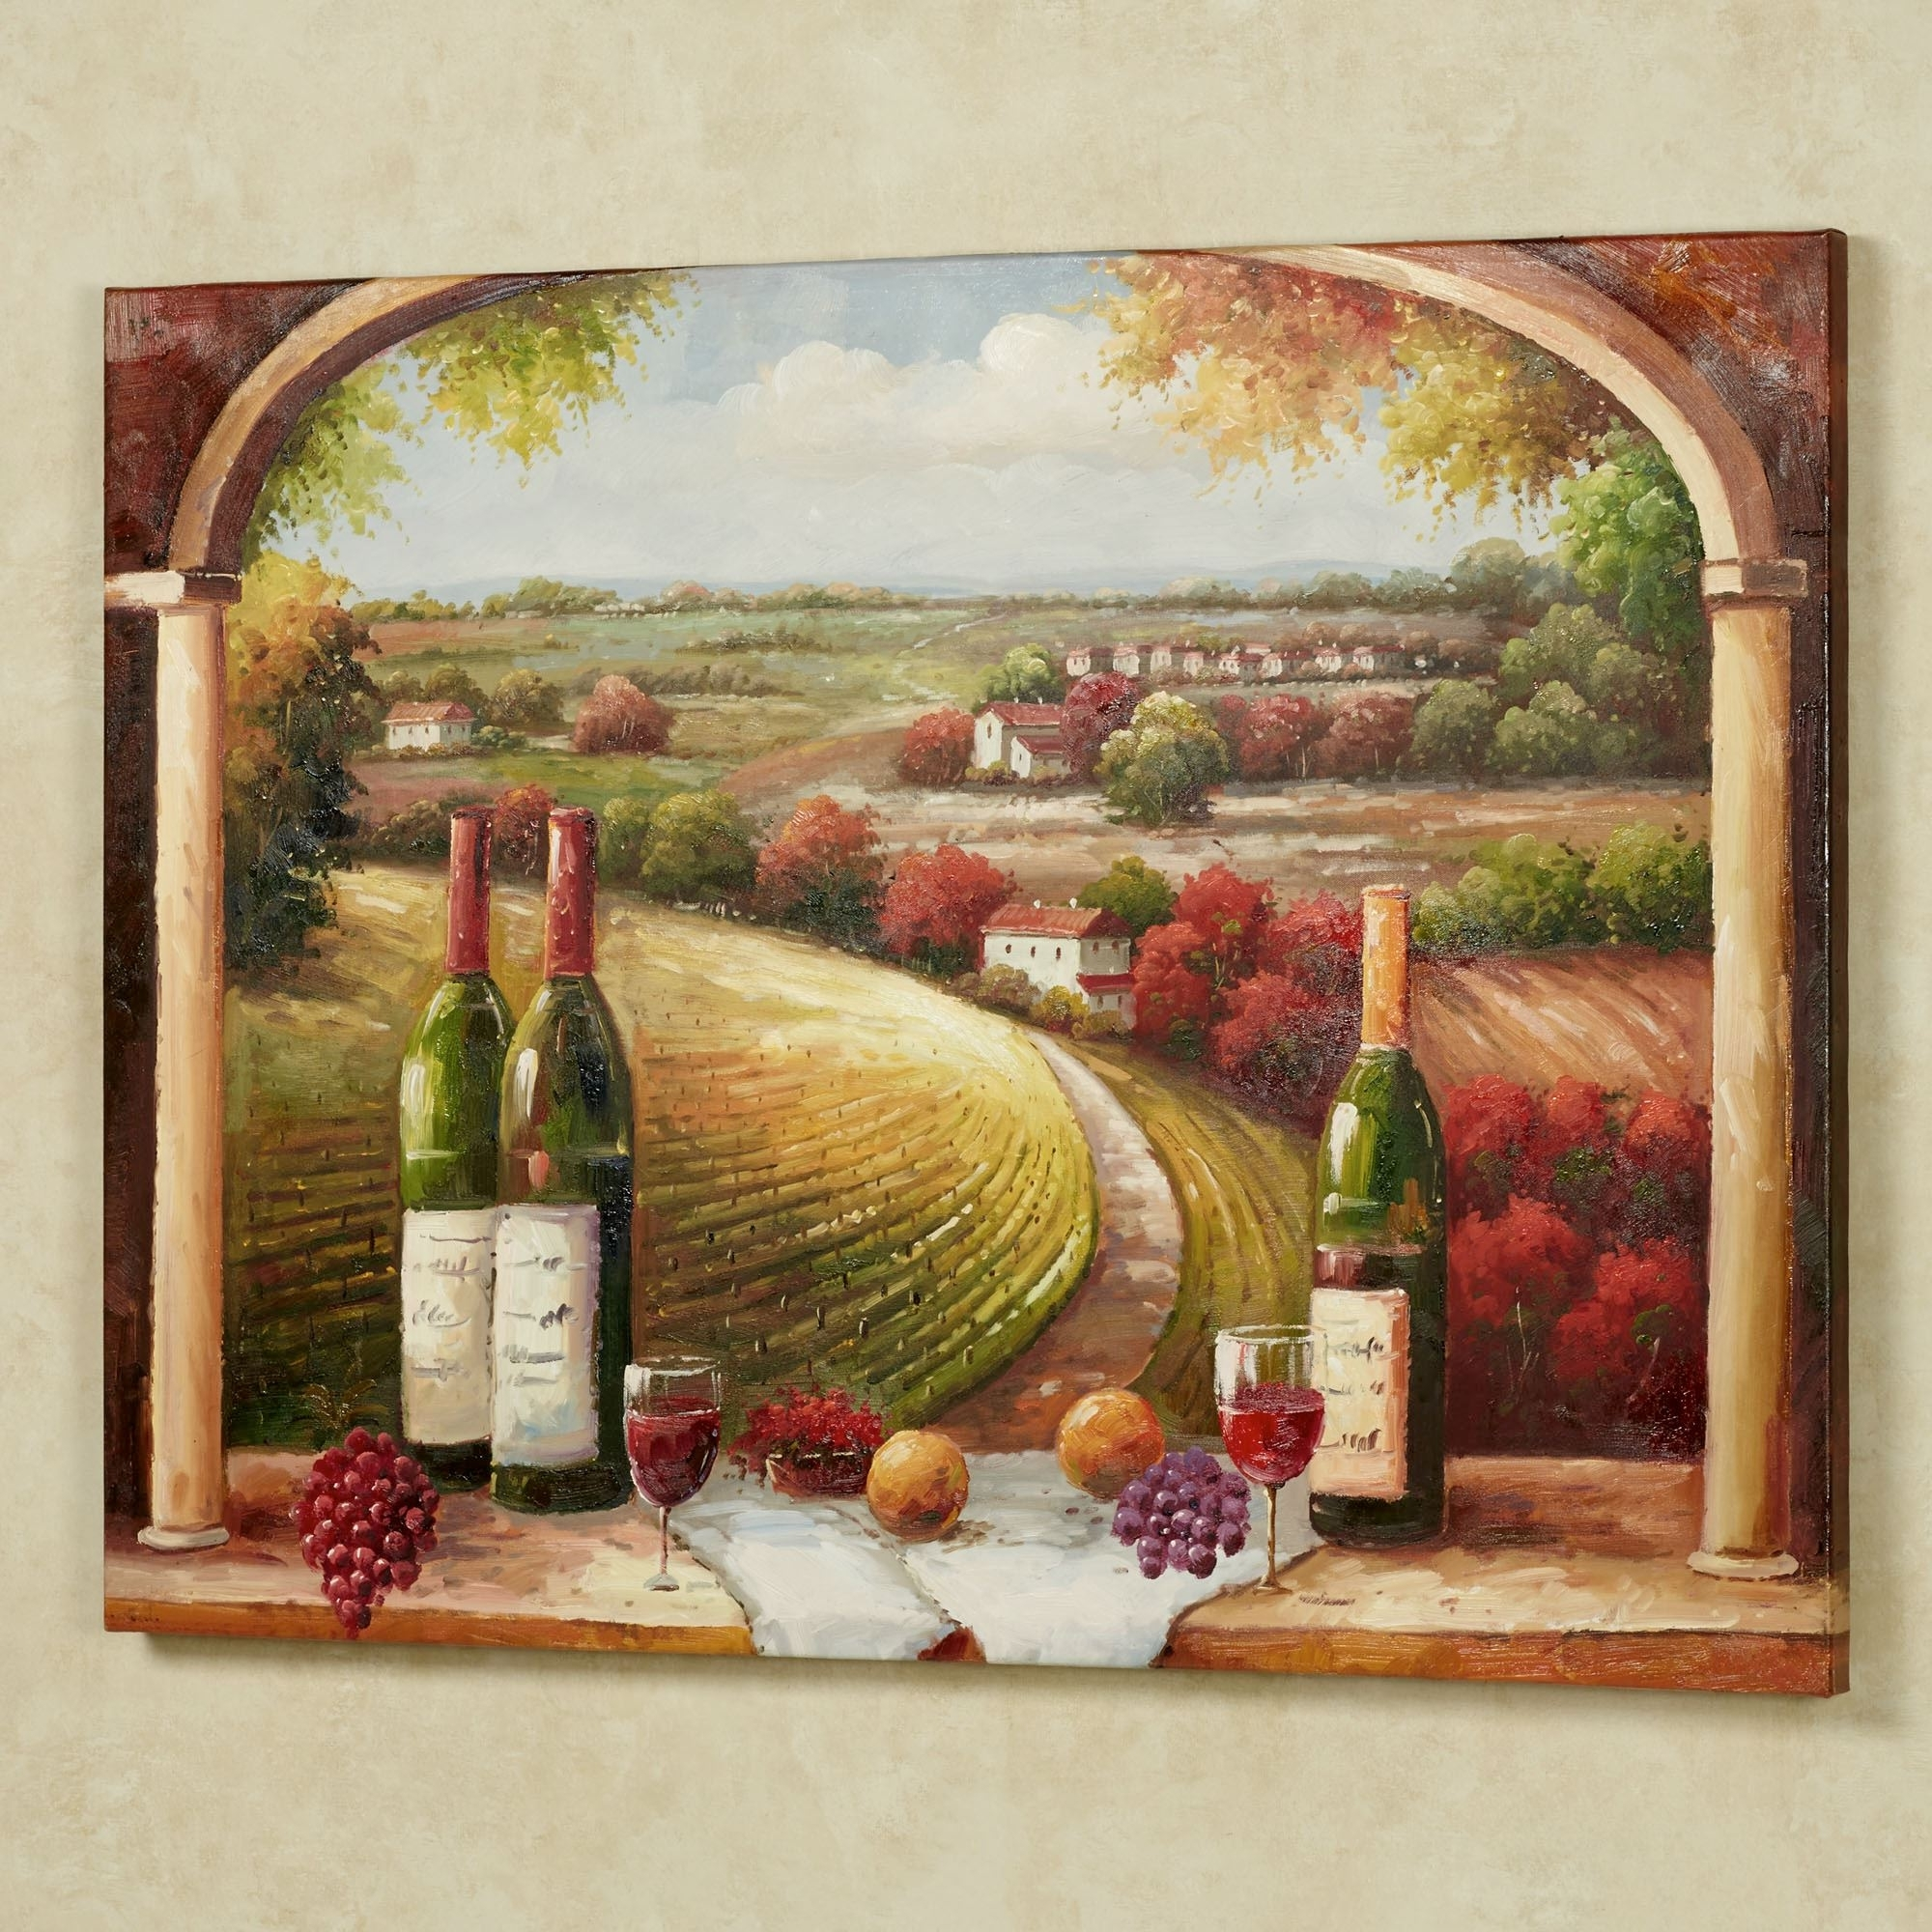 Touch Of Class With Framed Italian Wall Art (View 6 of 15)